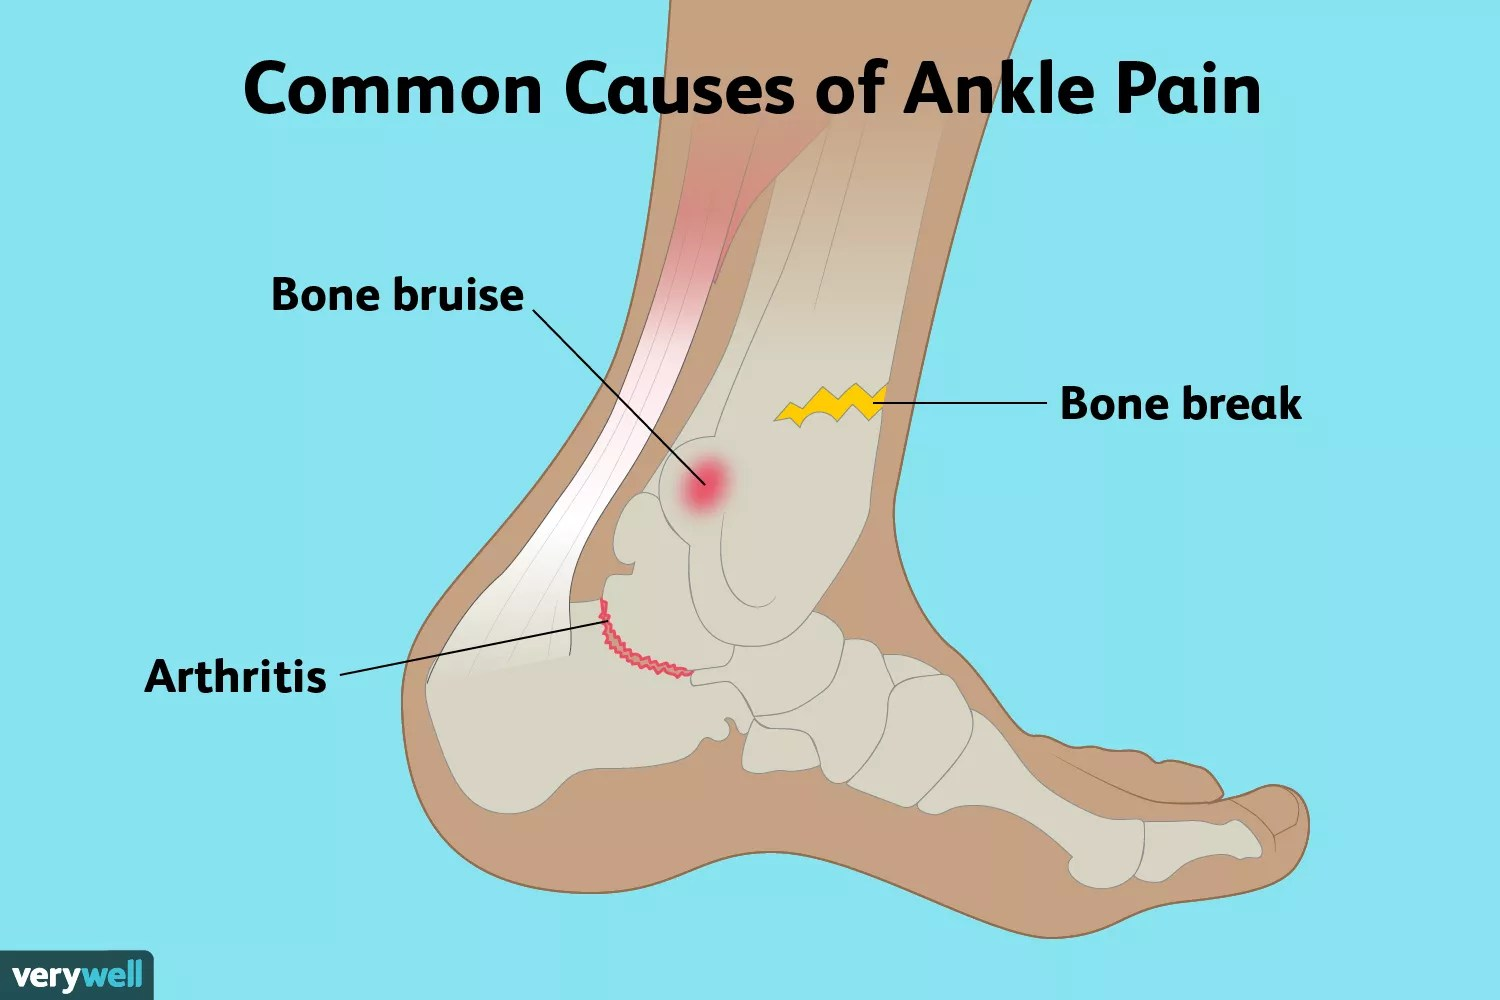 Common causes of ankle pain